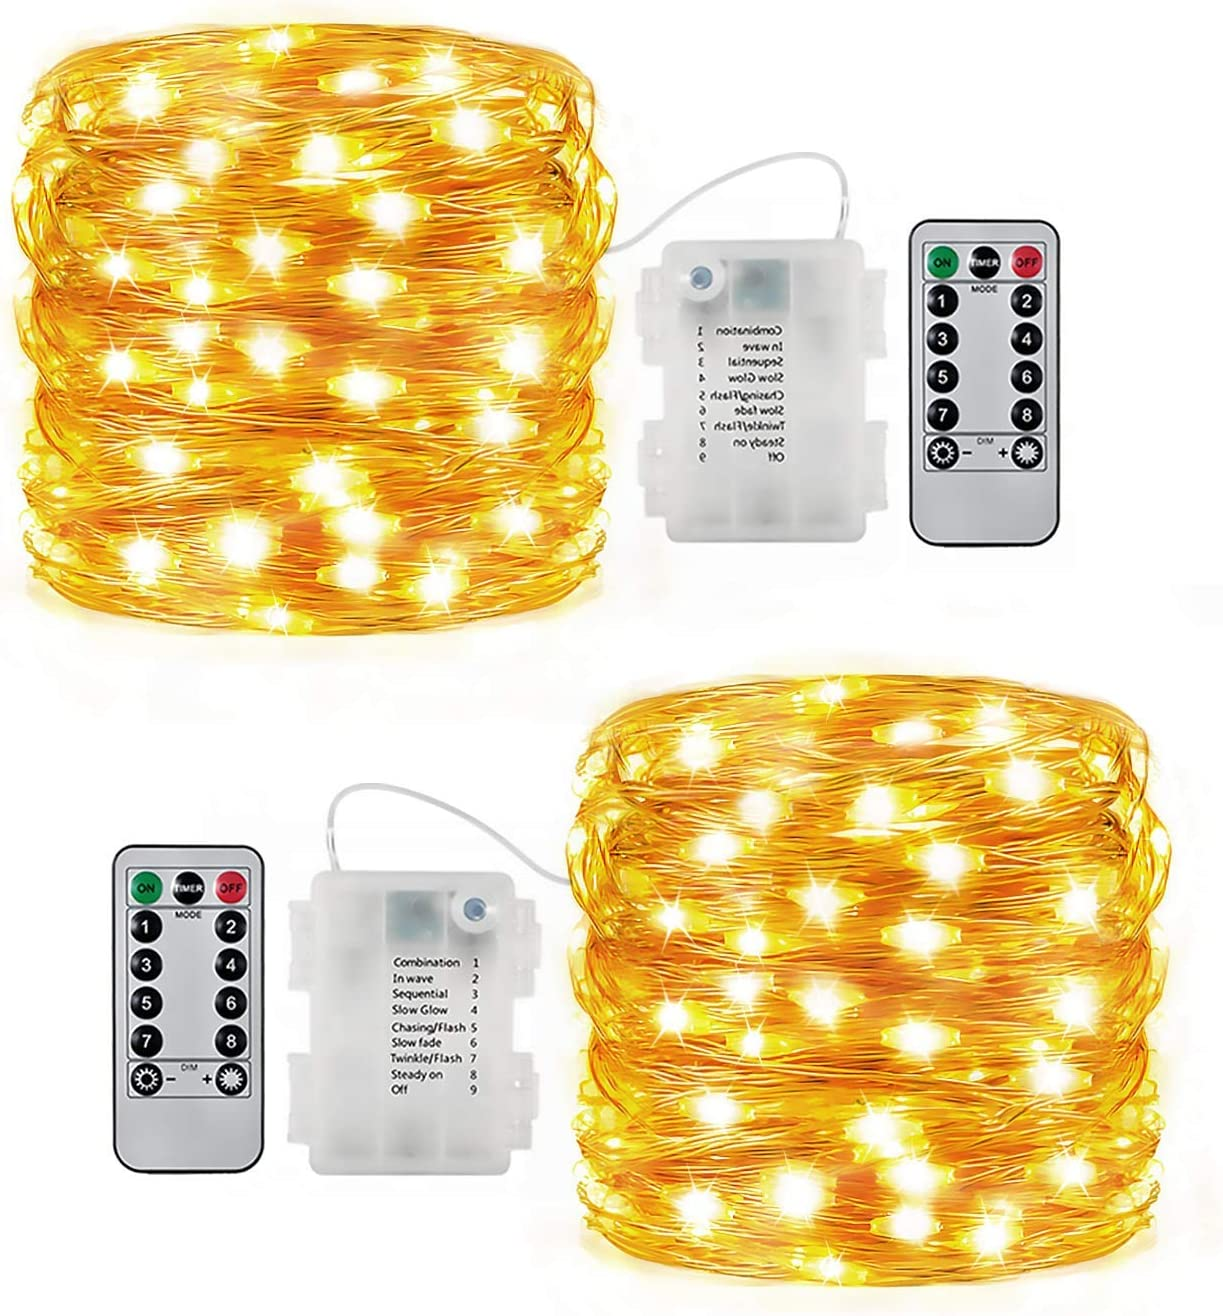 Fairy Lights Battery Operated Christmas String Lights Remote Control Timer Twinkle String Lights 8 Modes 16.4 Feet 50 LEDs Copper Wire Firefly Lights - 2 Set